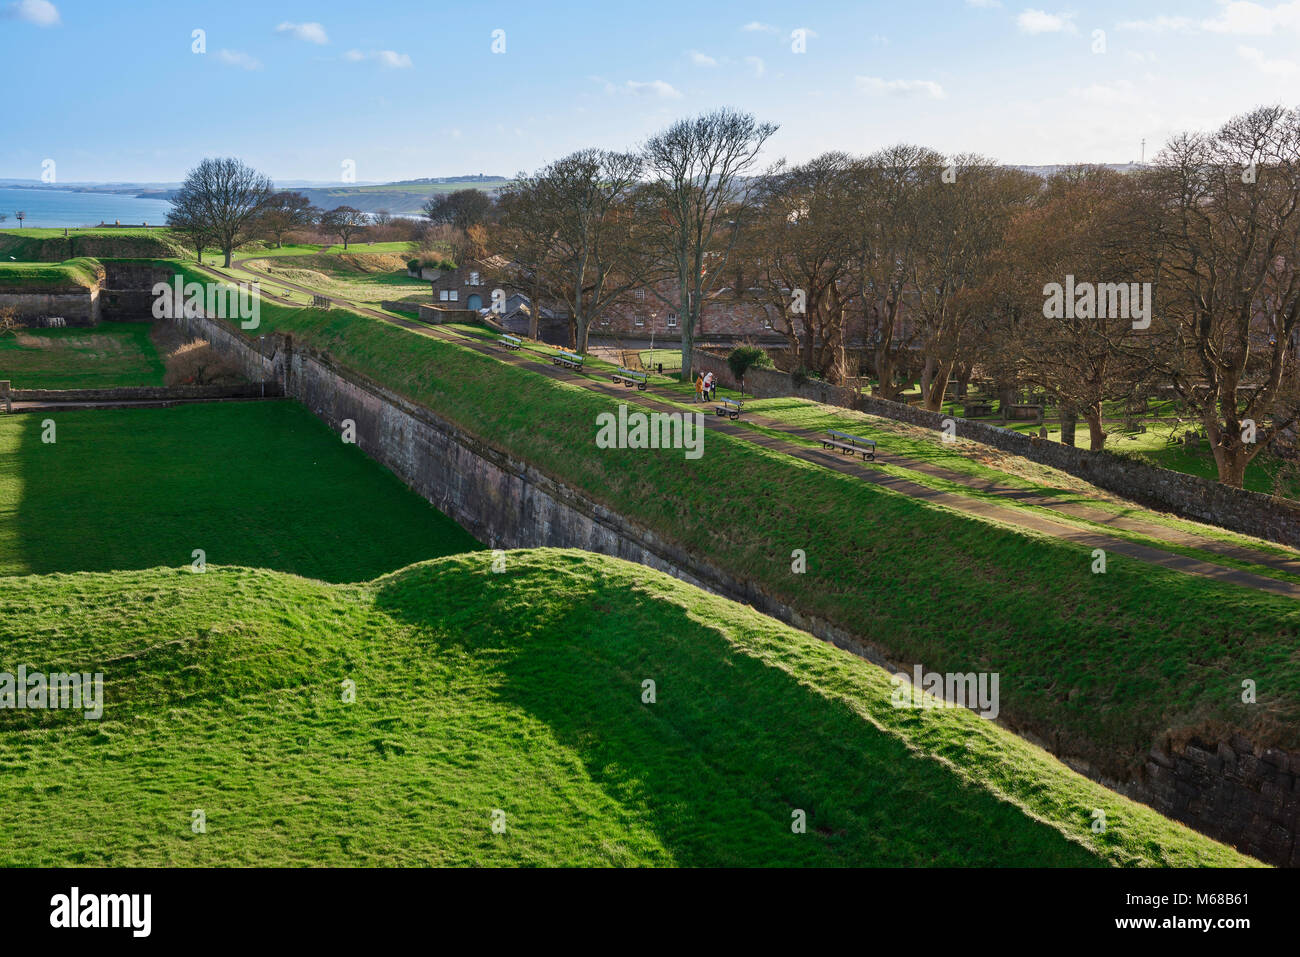 Berwick upon Tweed ramparts, view of the historic defensive ramparts along the south side of Berwick upon Tweed - Stock Image